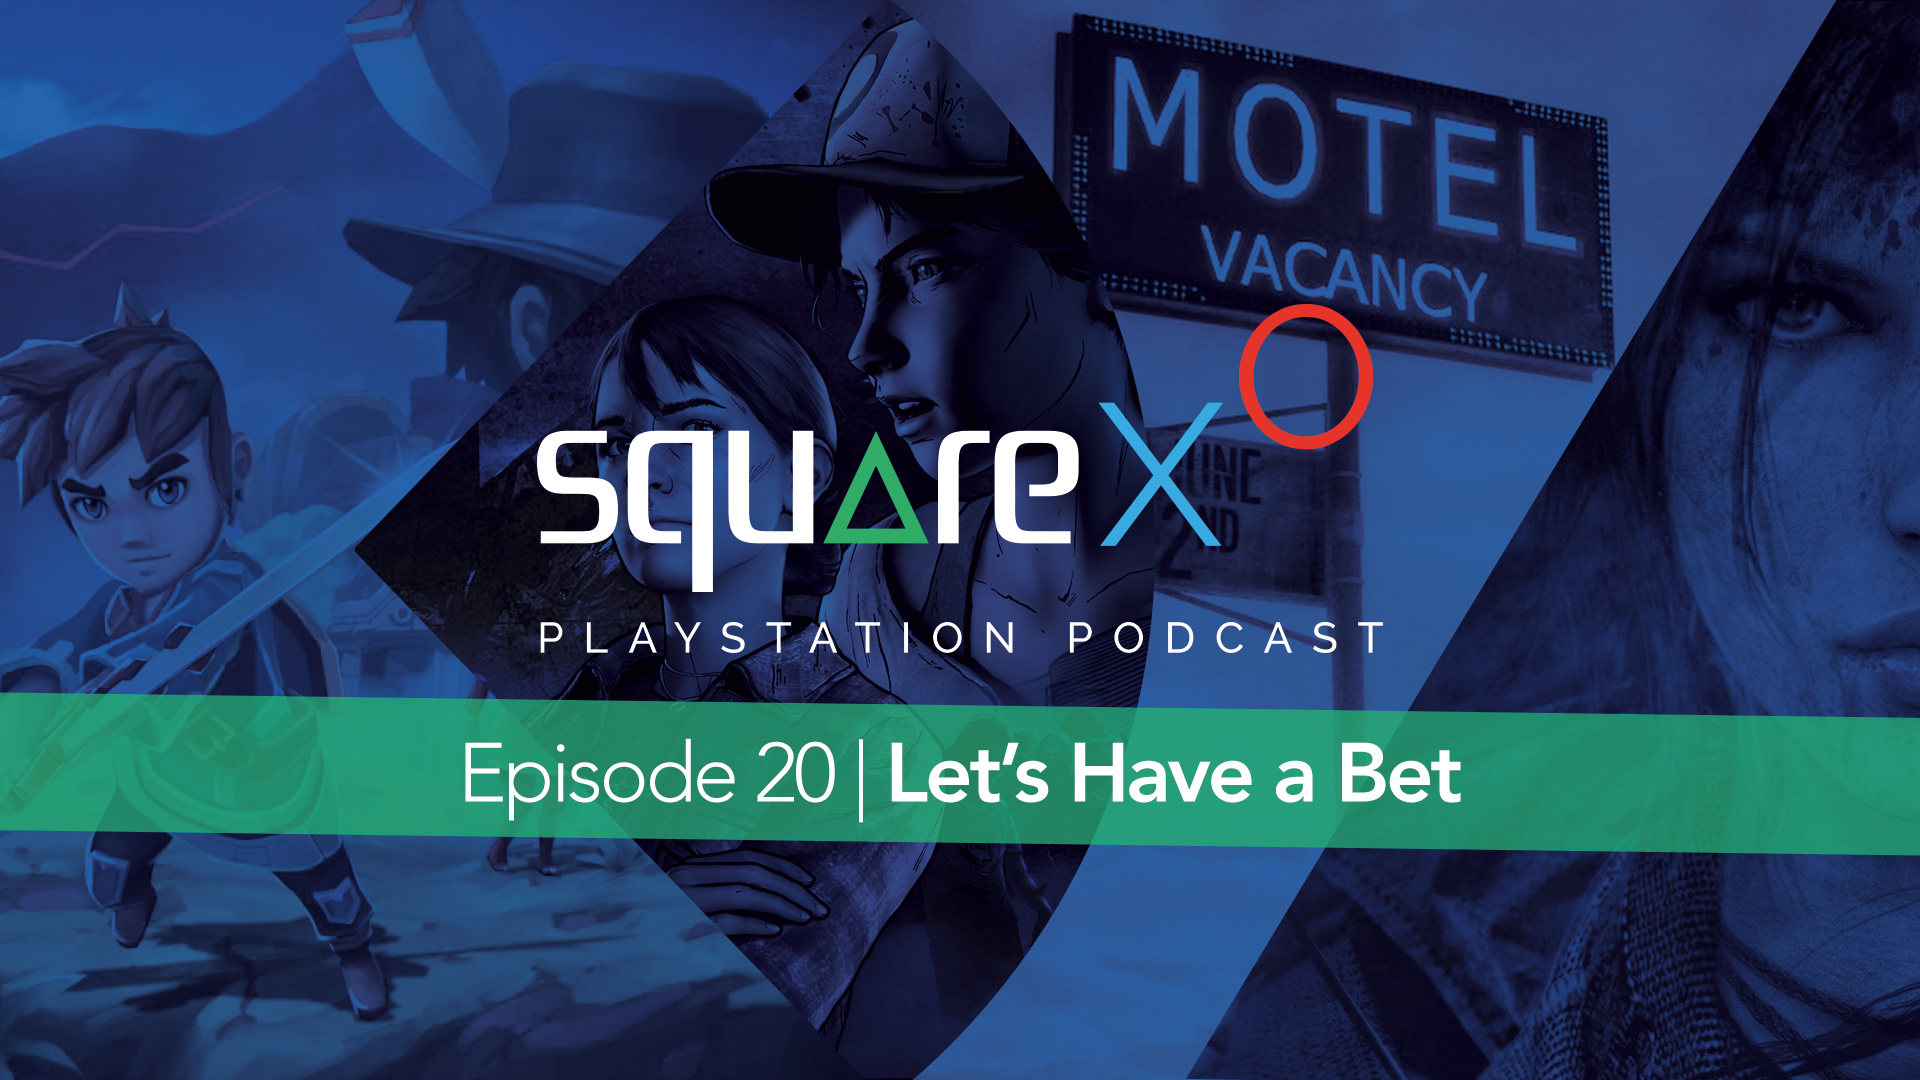 Episode 20 | Let's Have a Bet